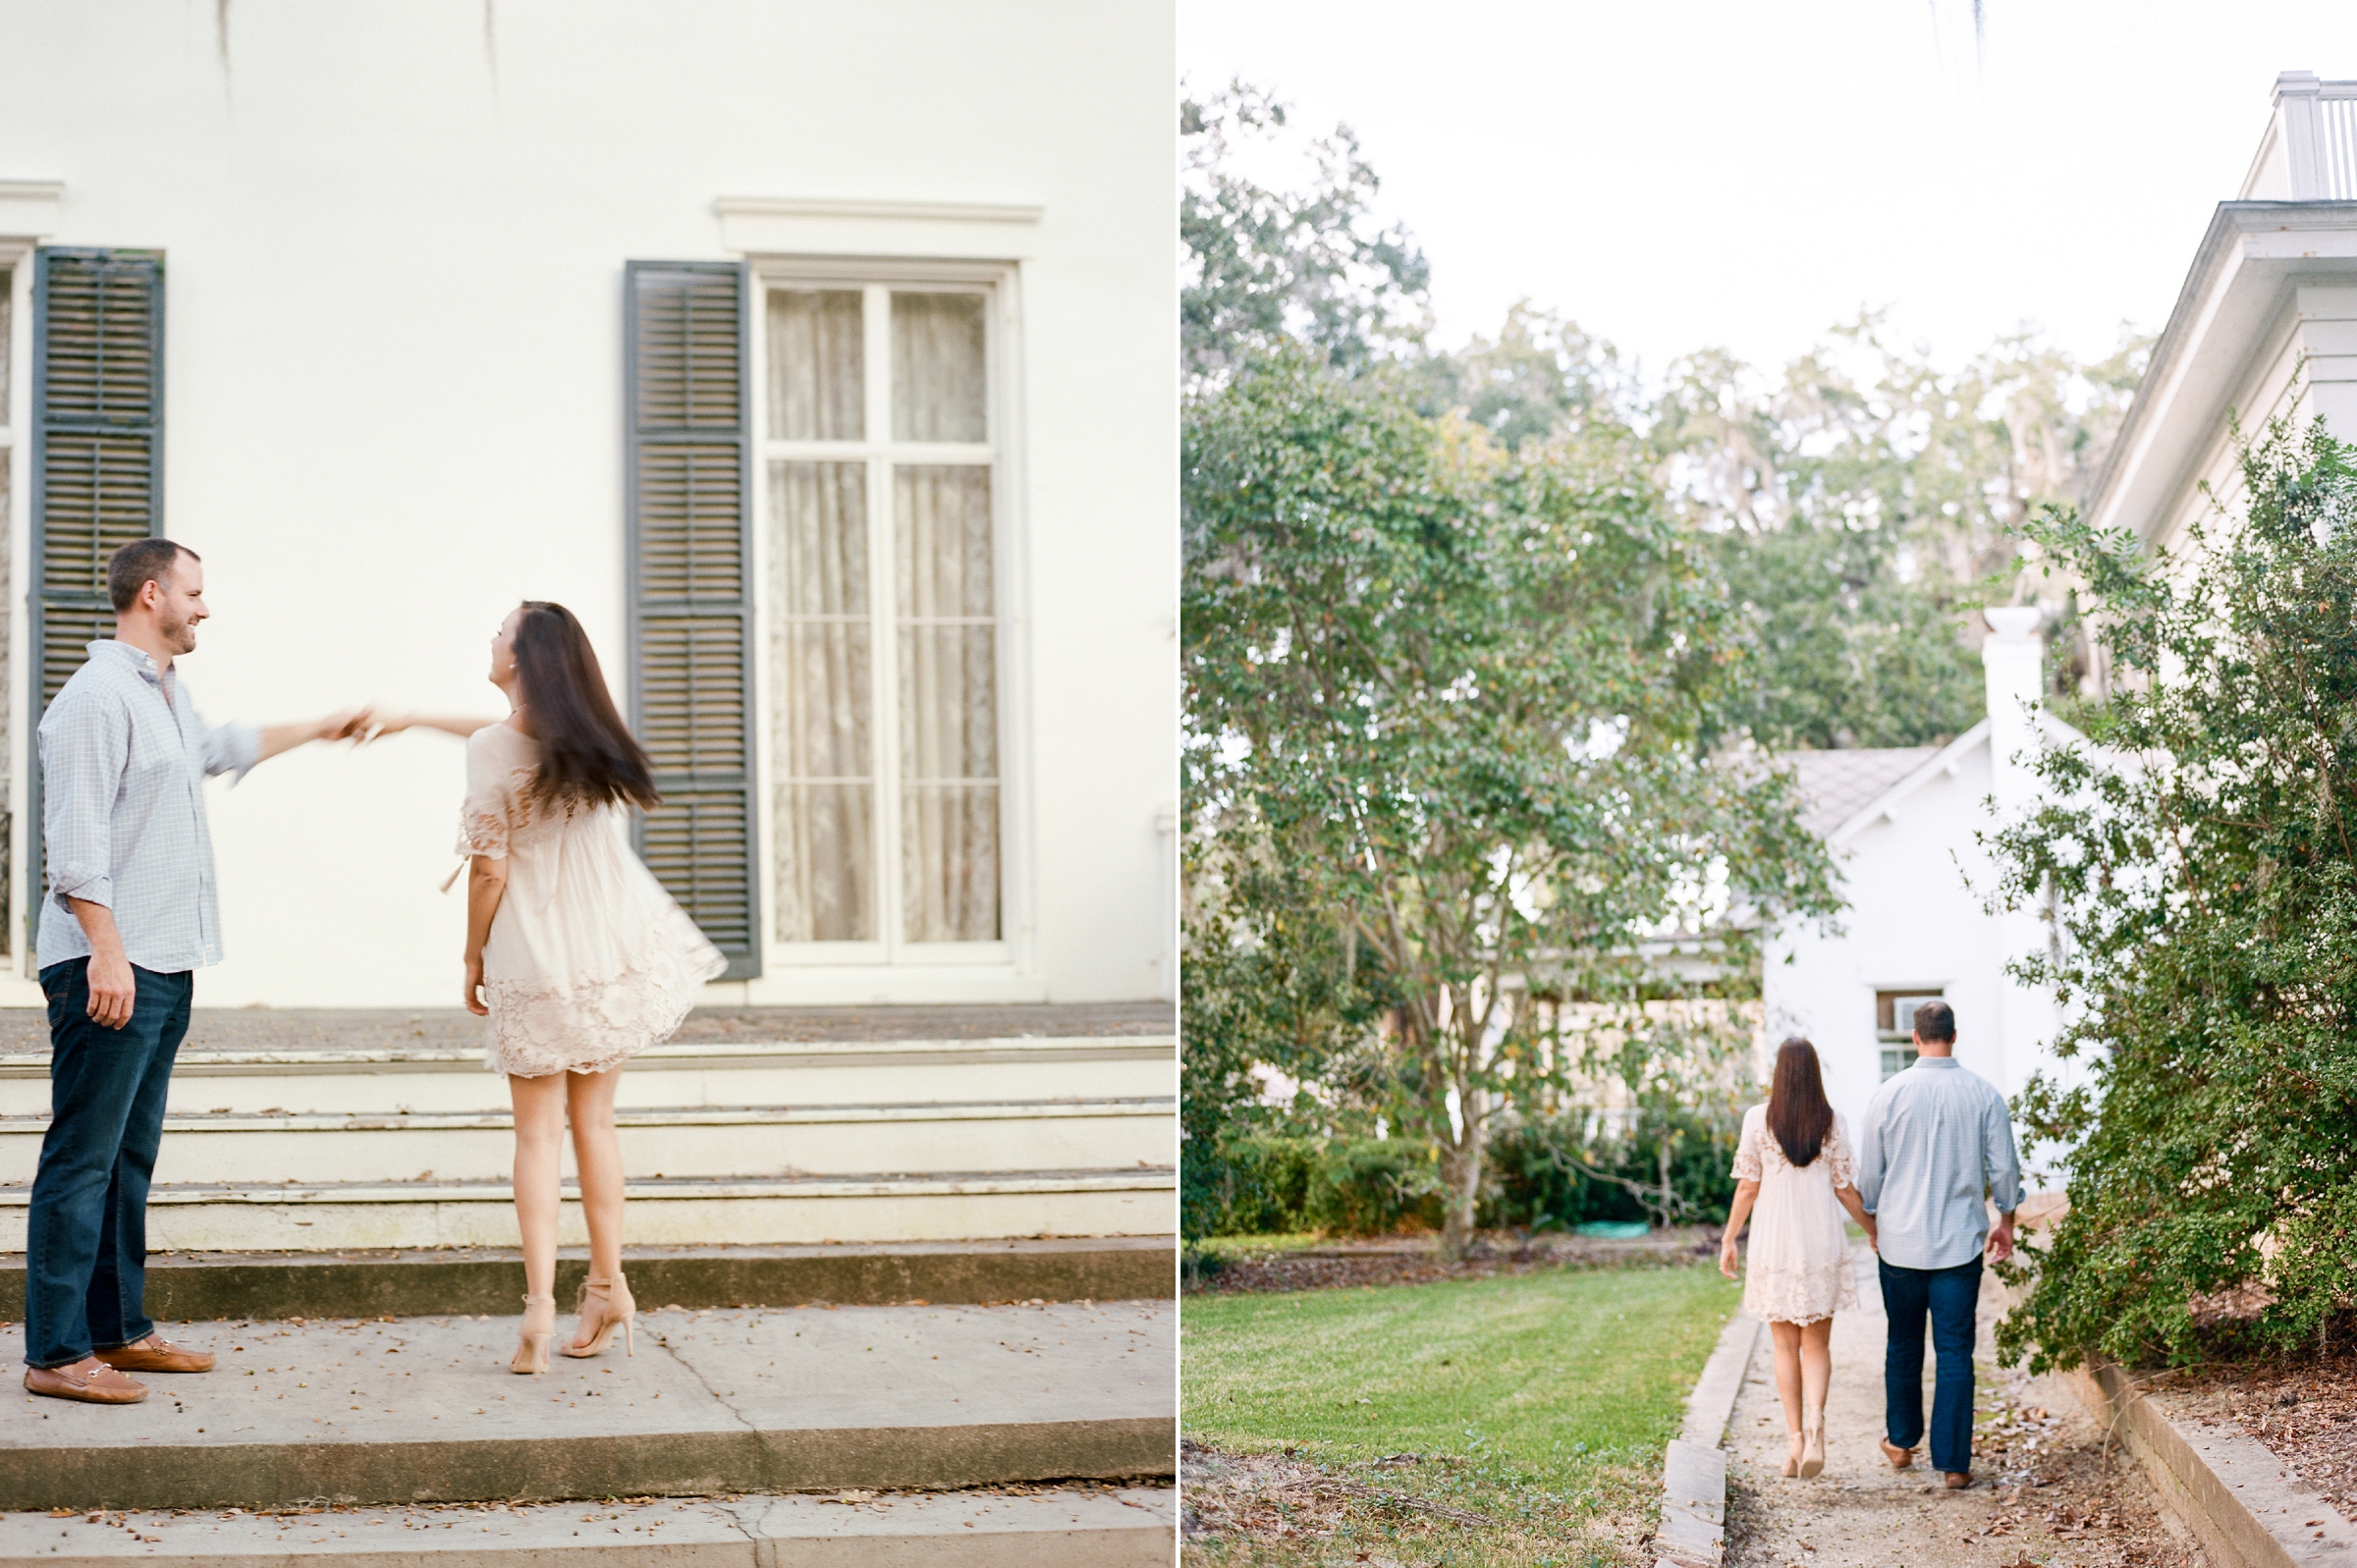 goodwood_museum_tallahassee_engagement_photographer_shannon_griffin_0014.jpg